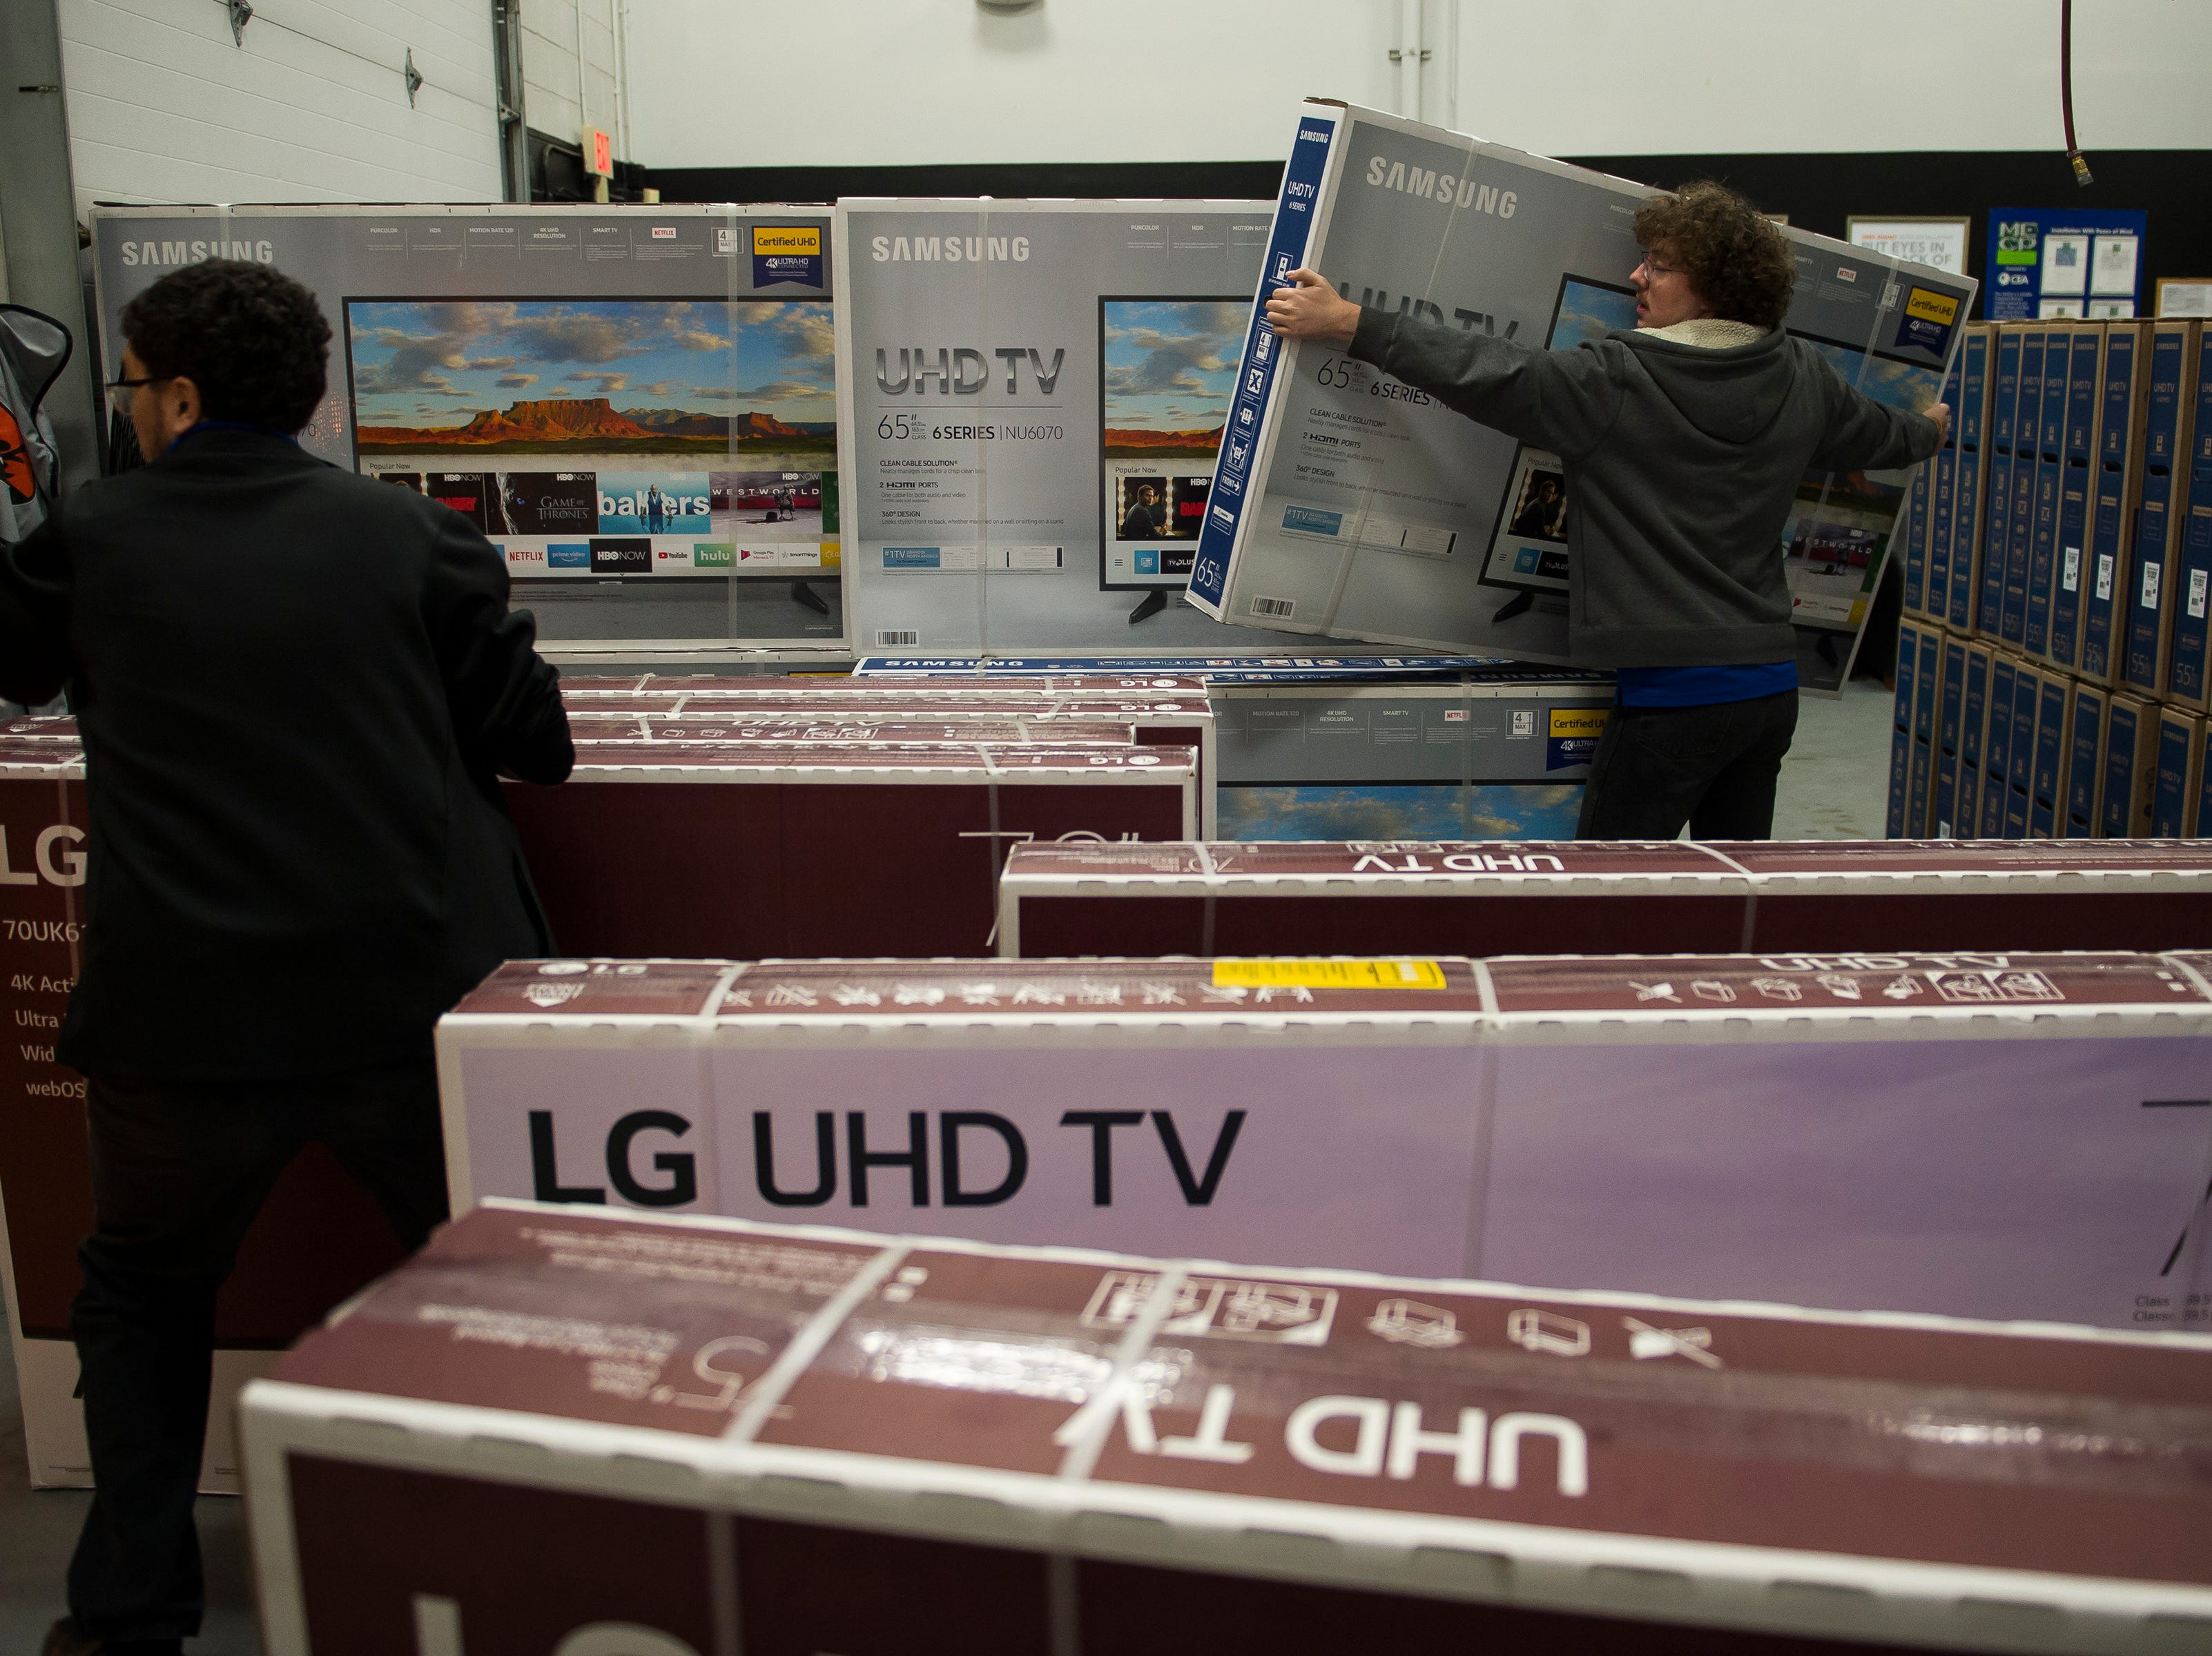 Best Buy employees Jacob Gentrup, right, and Sam Field load up large televisions into customer vehicle on Thursday, Nov. 22, 2018, at Best Buy in Fort Collins, Colo.